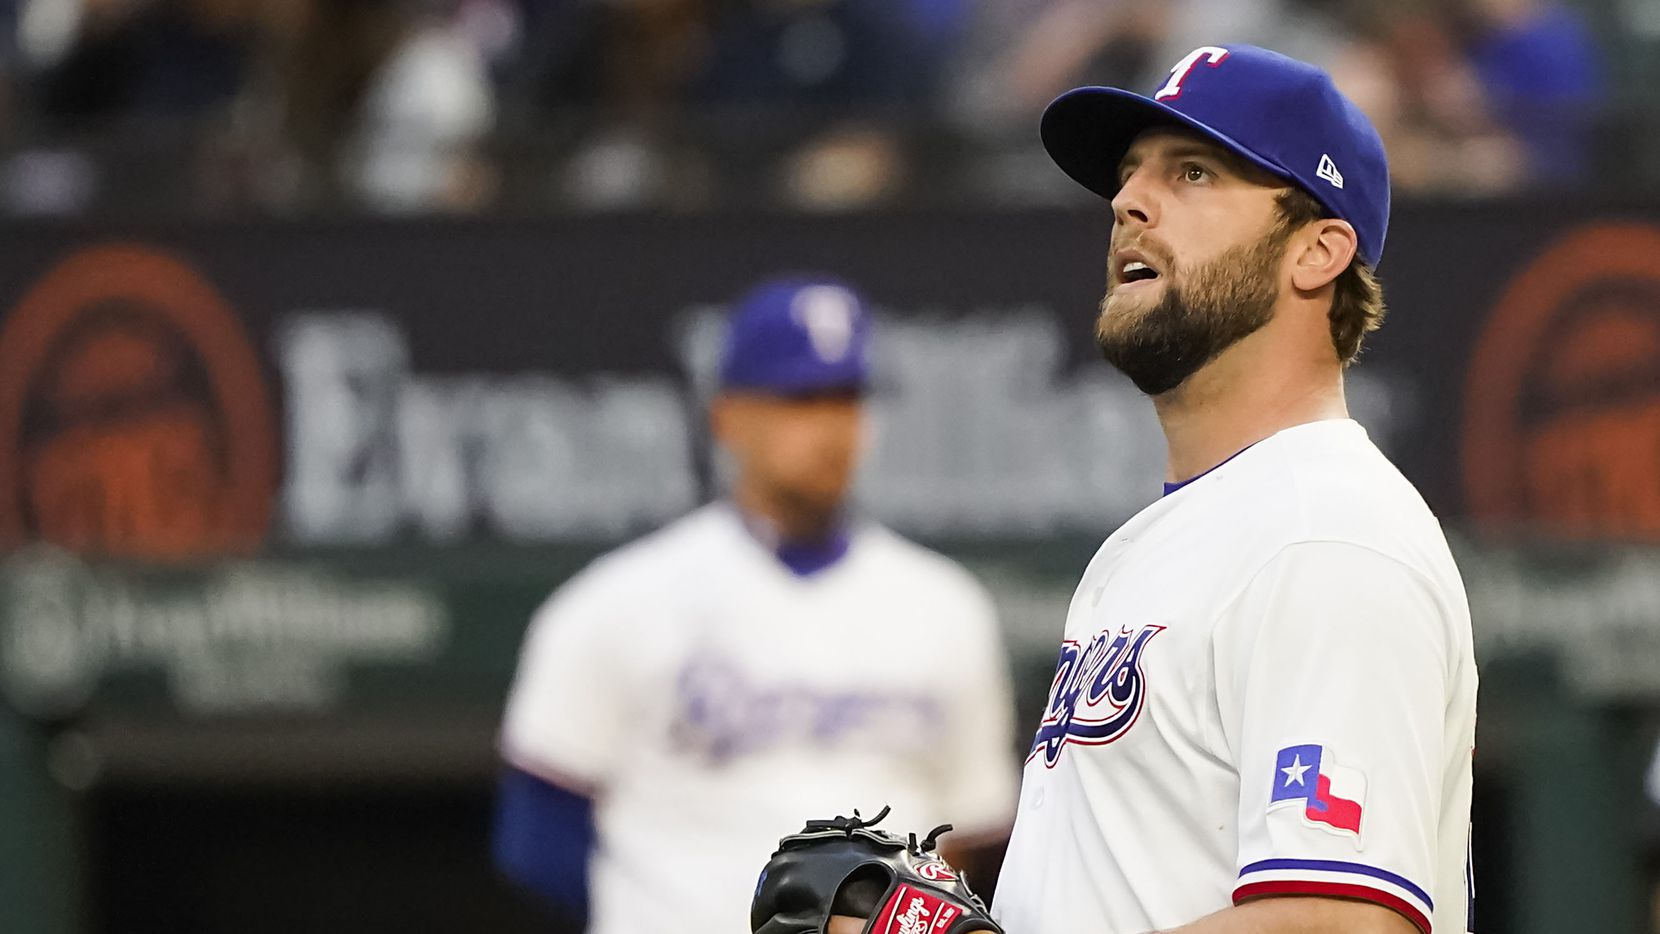 Texas Rangers pitcher Jordan Lyles reacts after a home run by San Diego Padres first baseman Eric Hosmer during the fourth inning at Globe Life Field on Saturday, April 10, 2021.